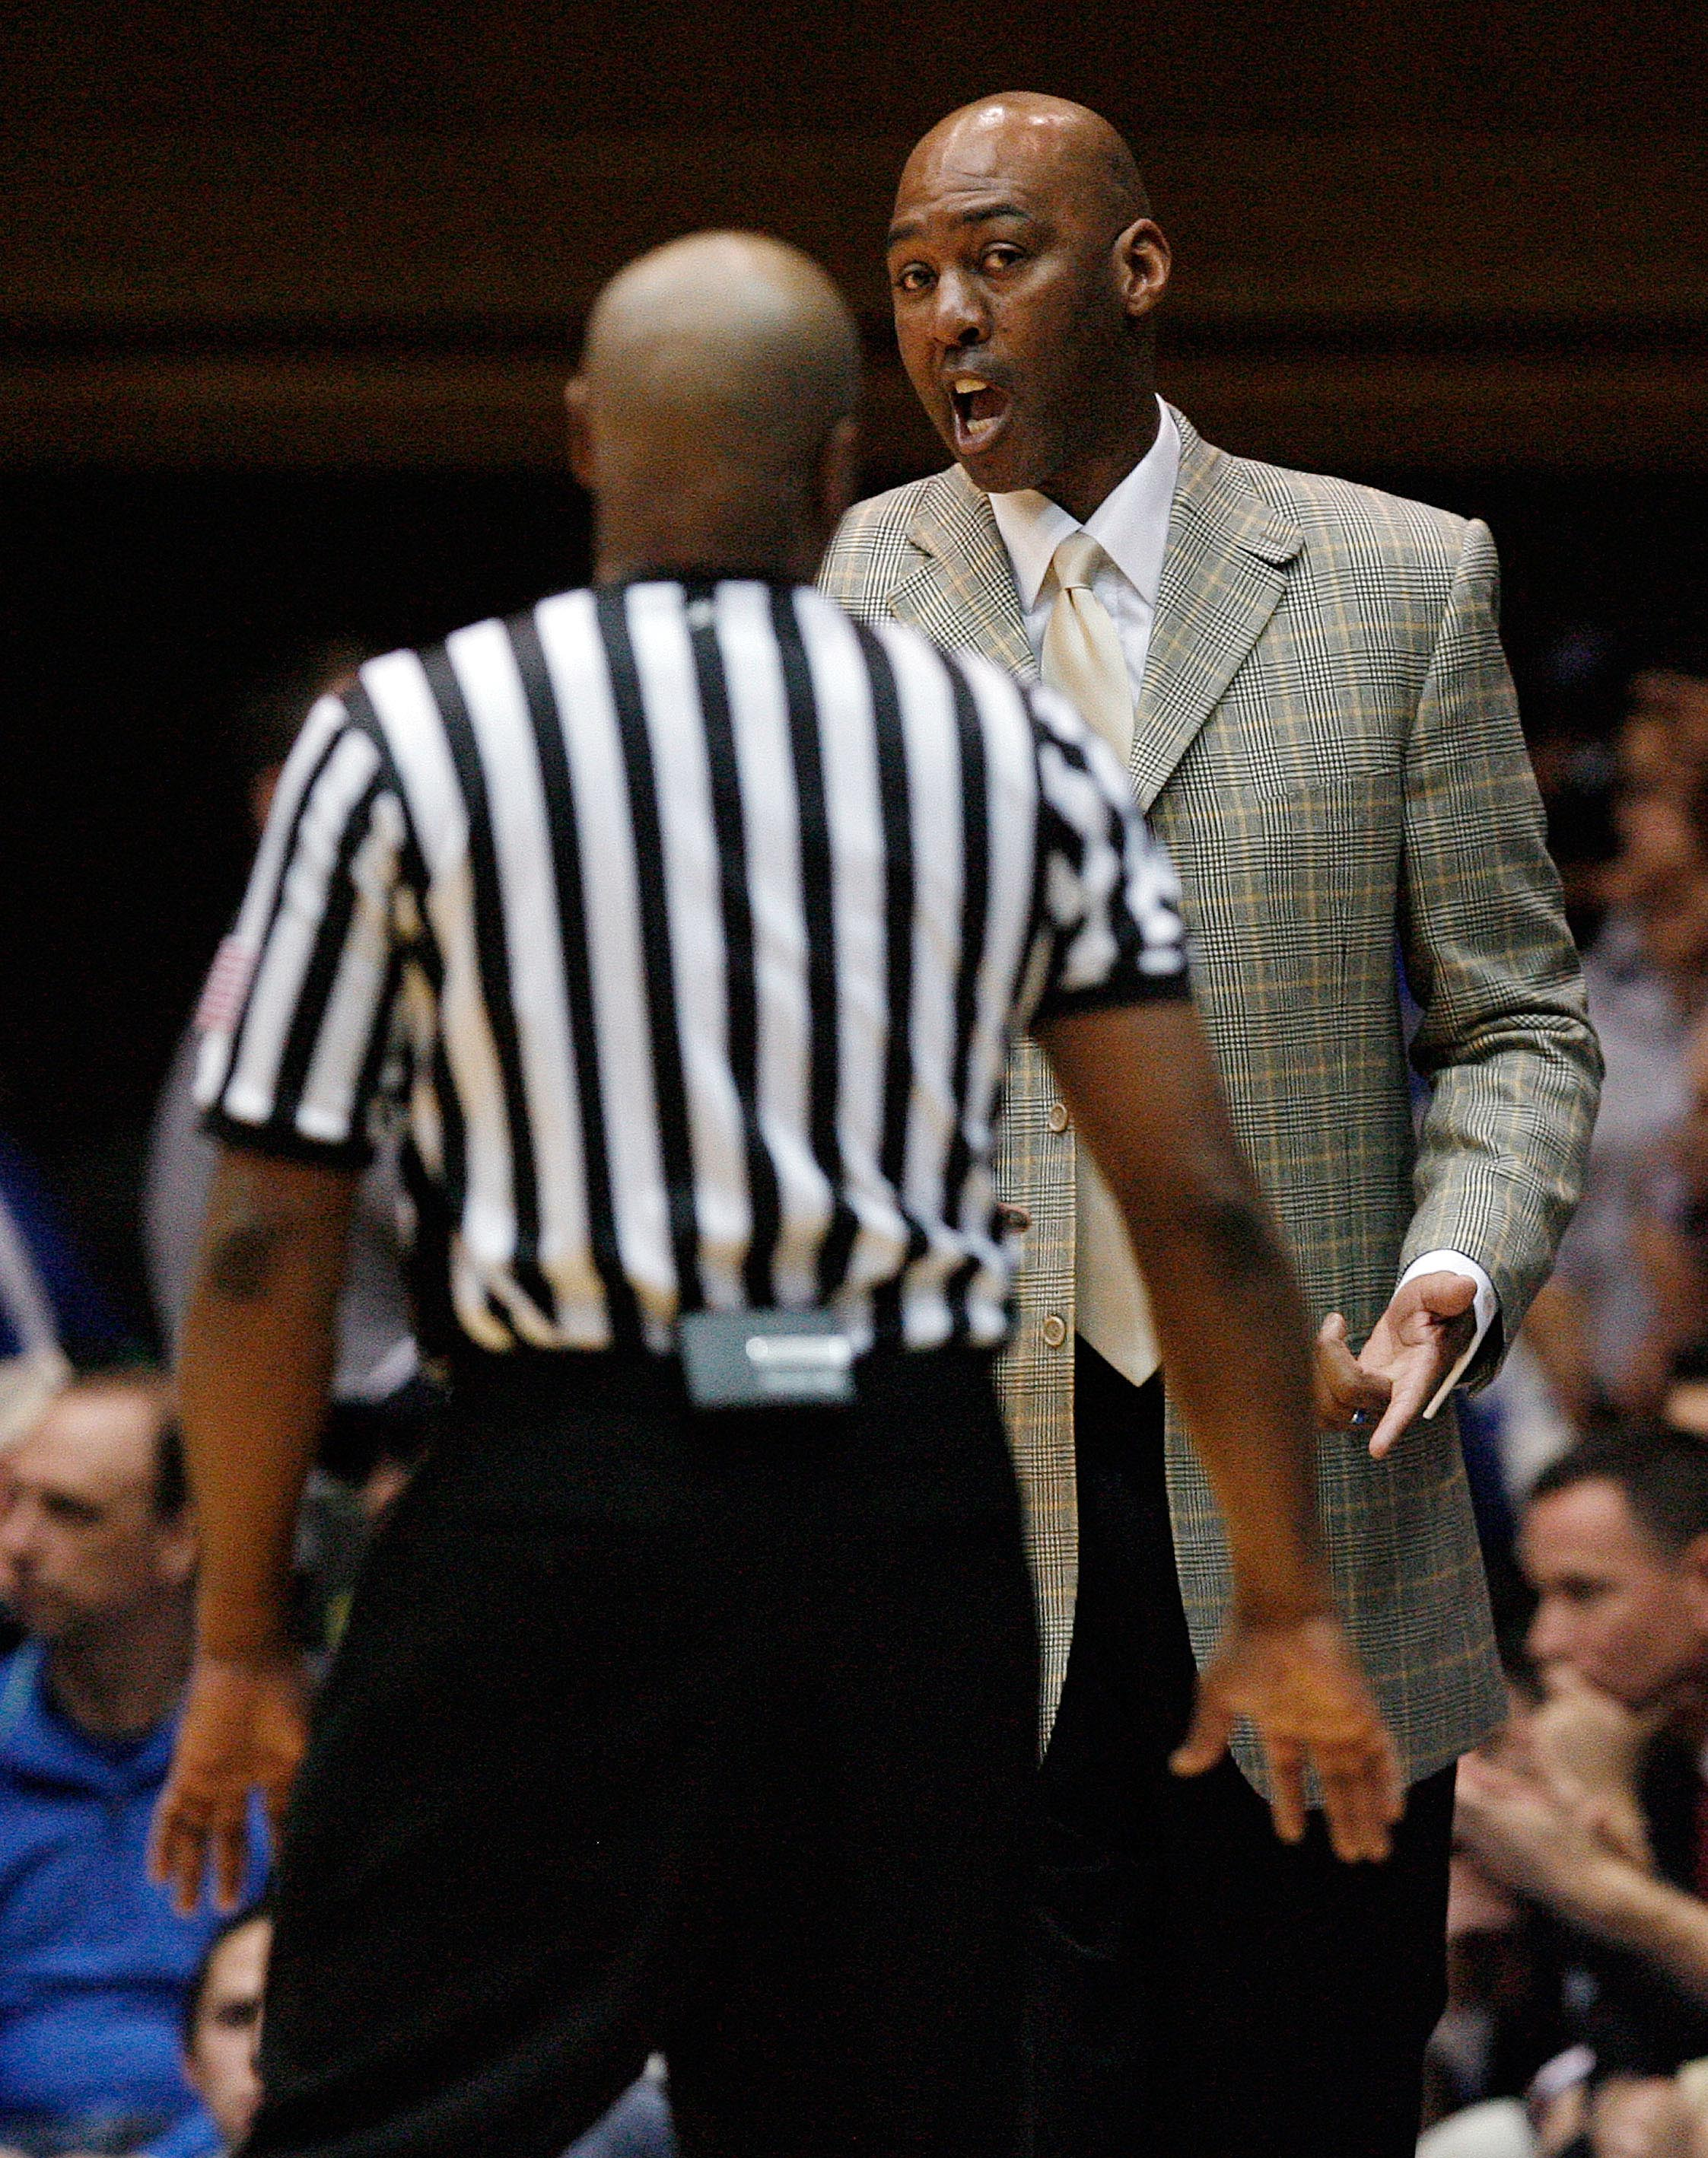 Danny Manning giving this ref a last warning before he delivers a sincere butt whooping.